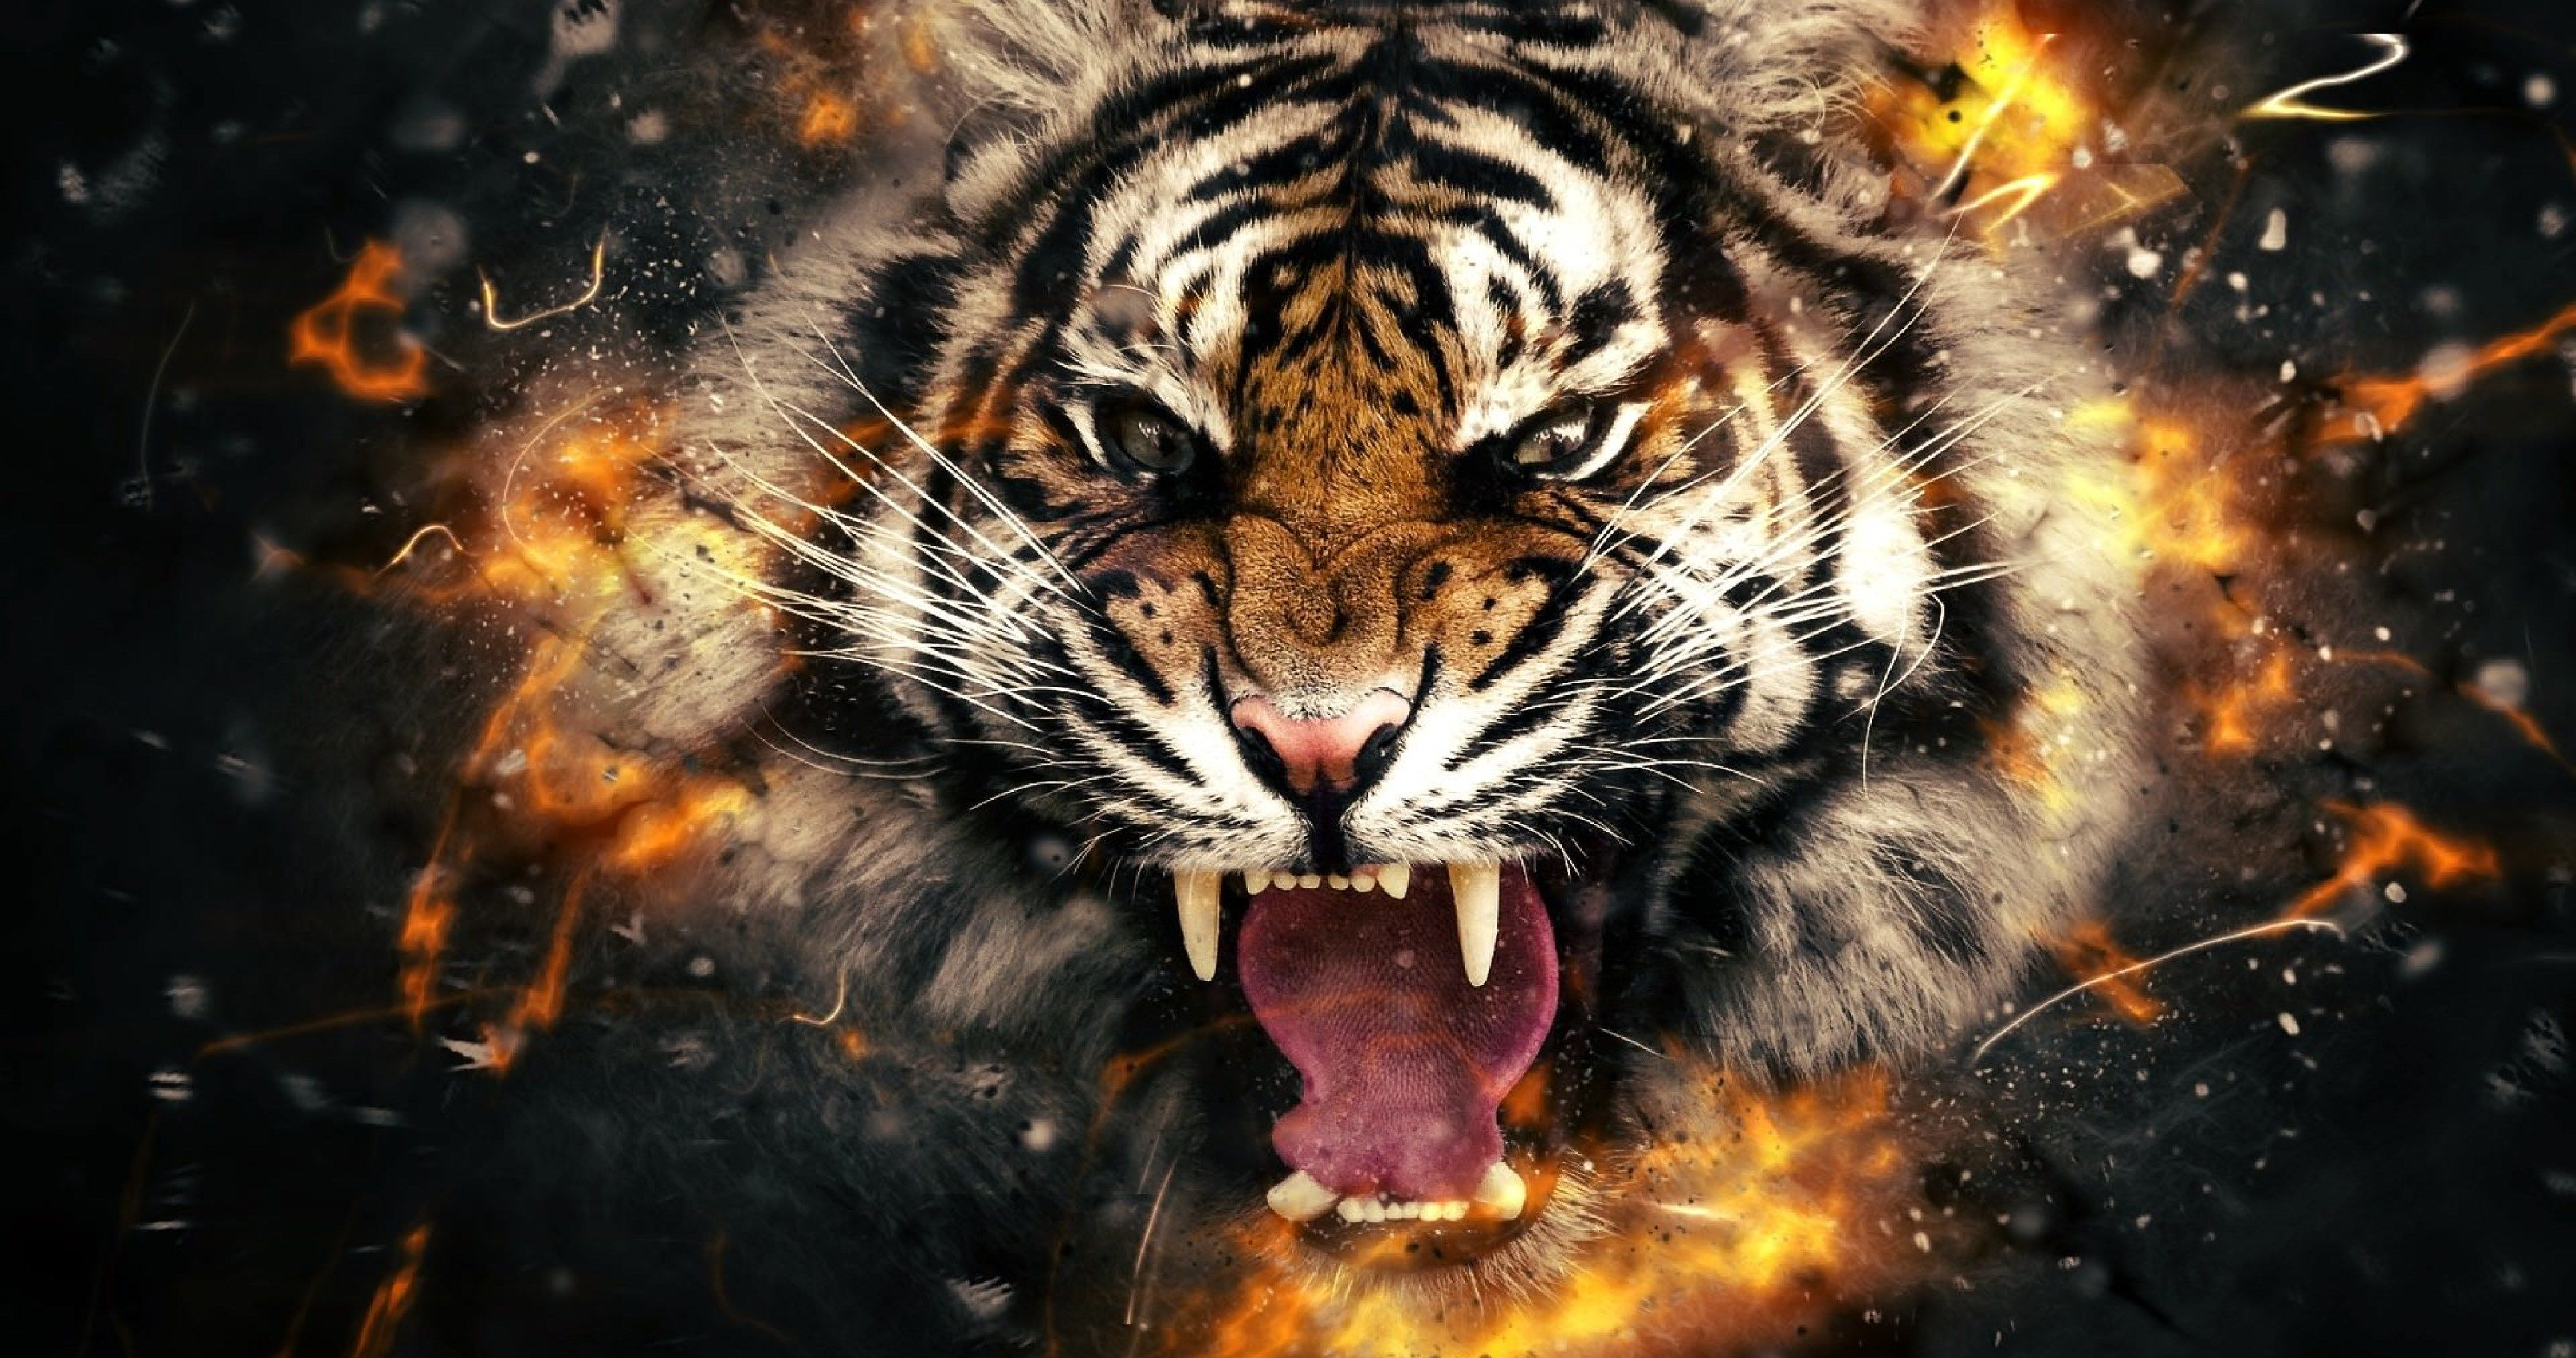 Ultra Hd Wallpapers For Iphone 77488 Wild Animal Wallpaper Tiger Wallpaper Tiger Photography